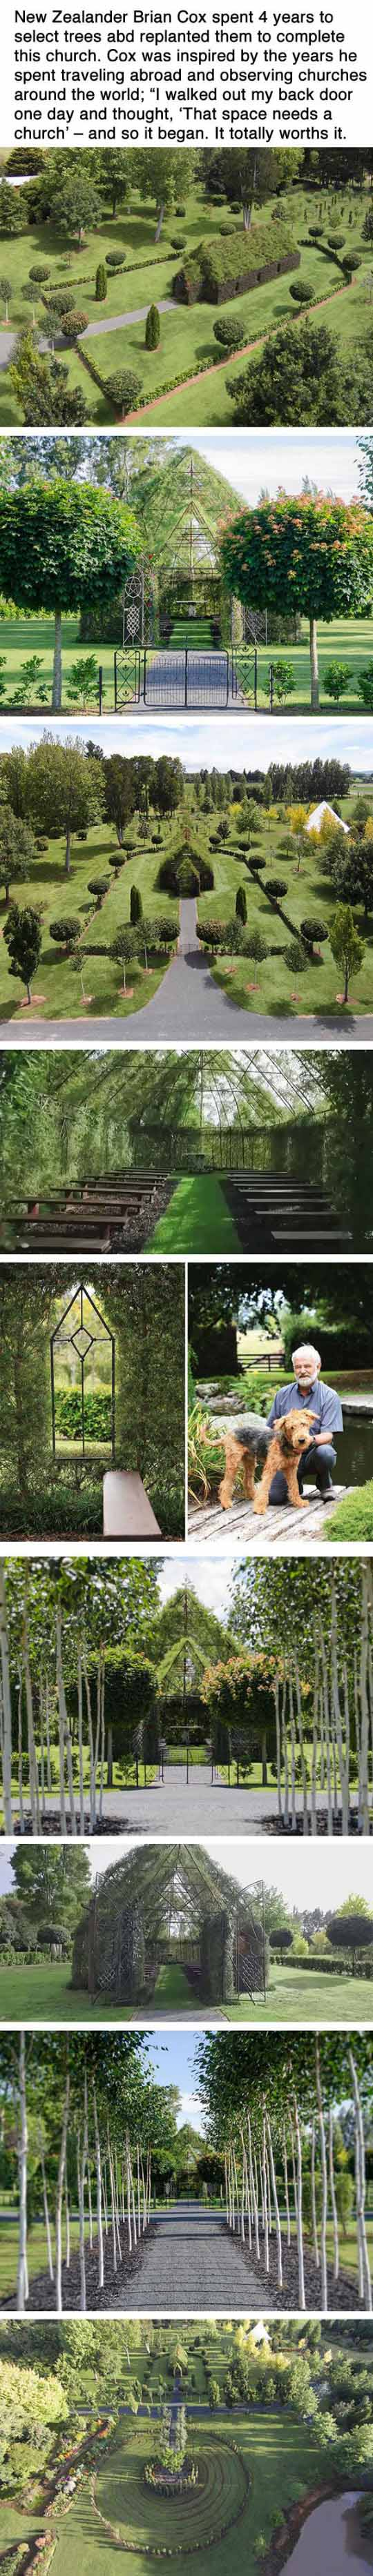 Man Spent Four Years Growing A Church From Trees